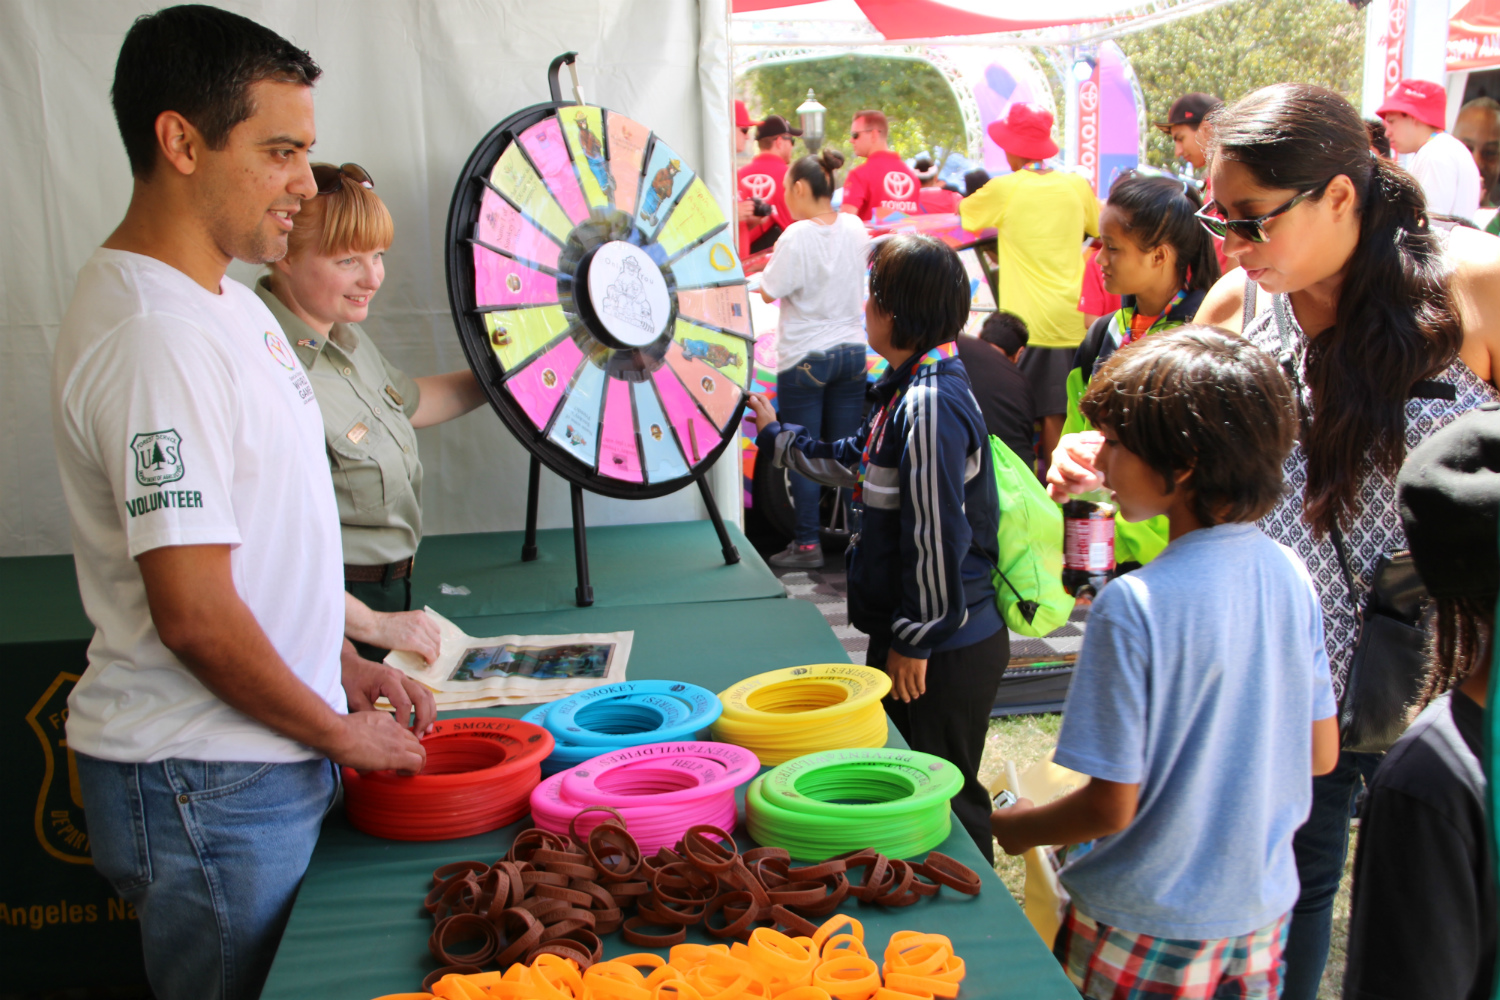 Jose Henriquez-Santos (left), a landscape architect, and Joanna Huckabee (behind), an archaeologist, both with the Angeles National Forest, discuss the types of prizes available on the wheel with visitors at the U.S. Forest Service booth.